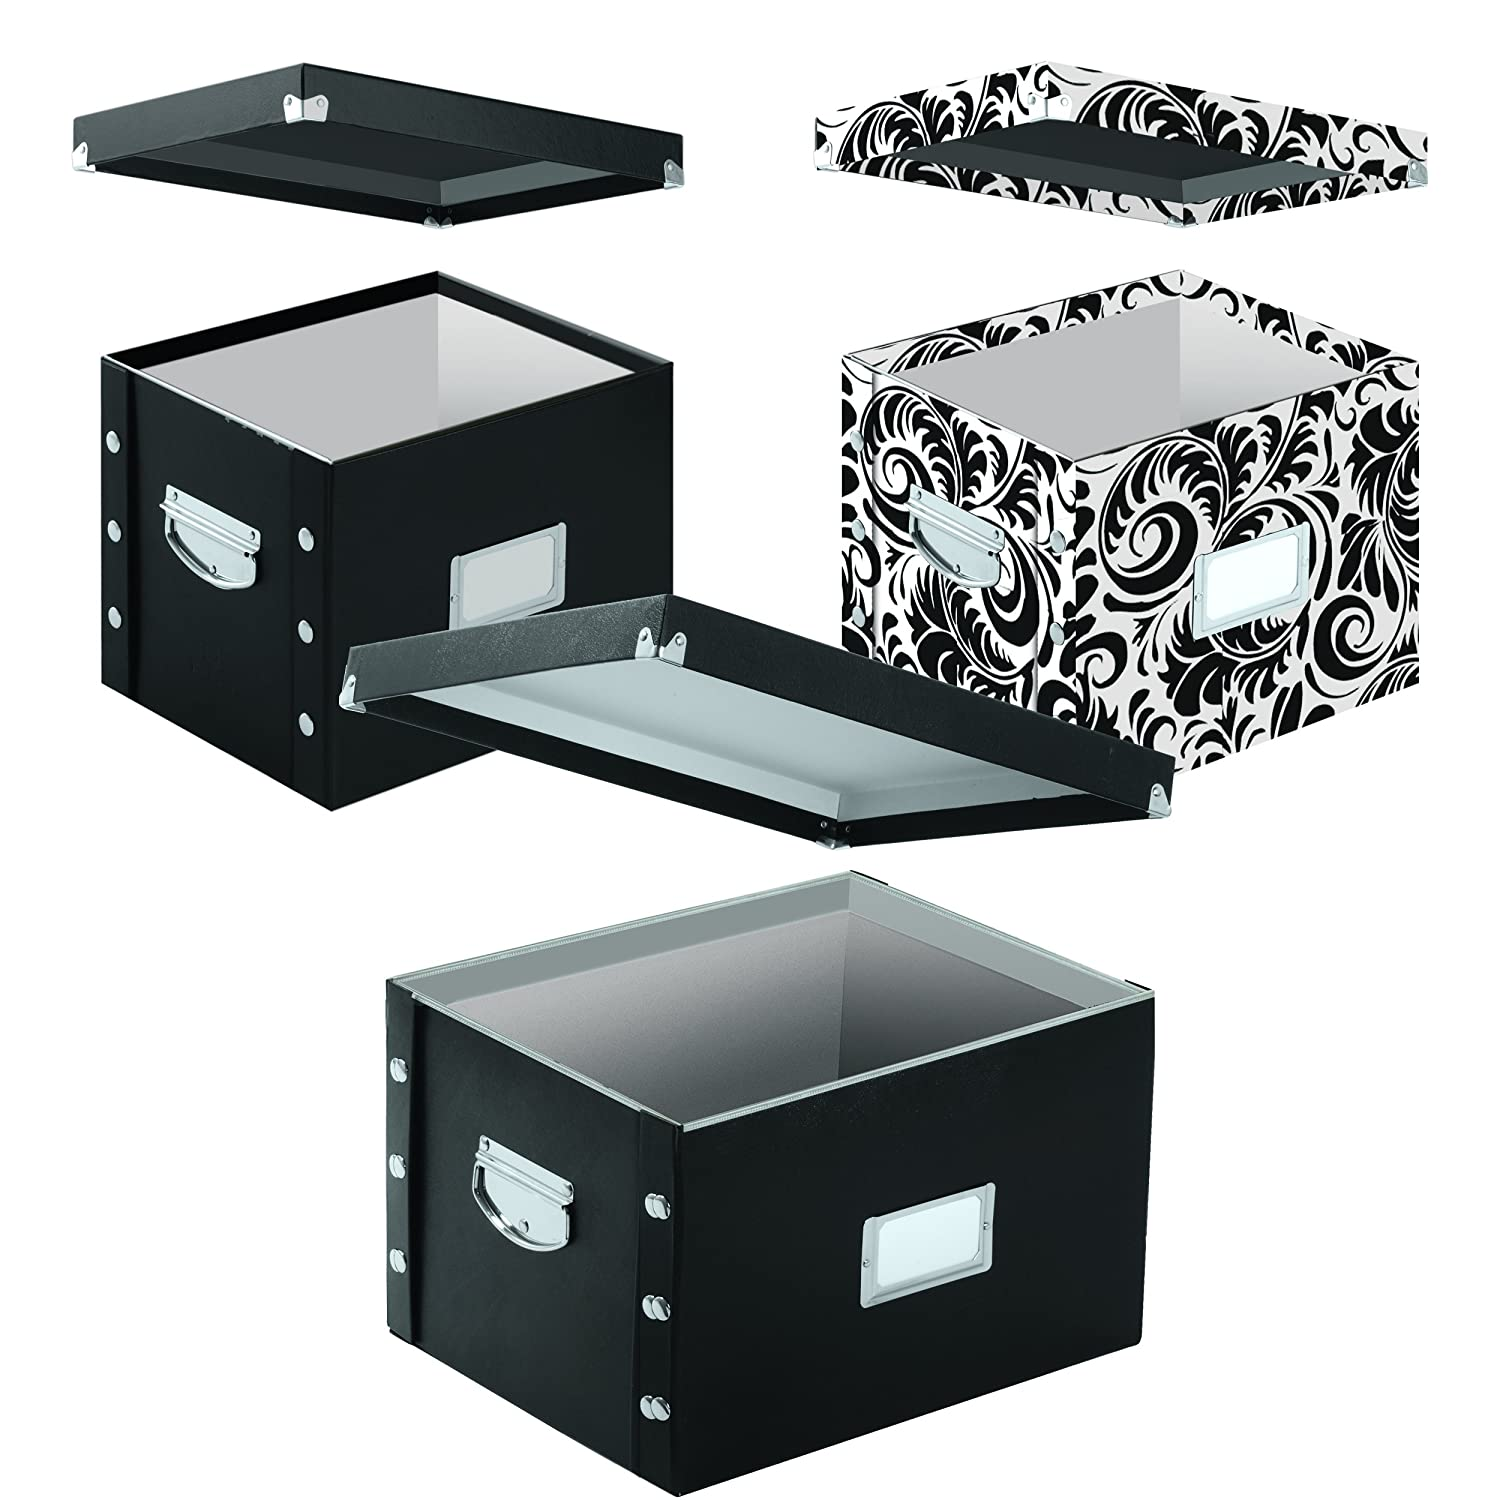 Snap-N-Store Snap Together File Box, Letter, 9.75 Height x 10.75 Depth x 13.25 Width Inch, Glossy Black (SNS01533)